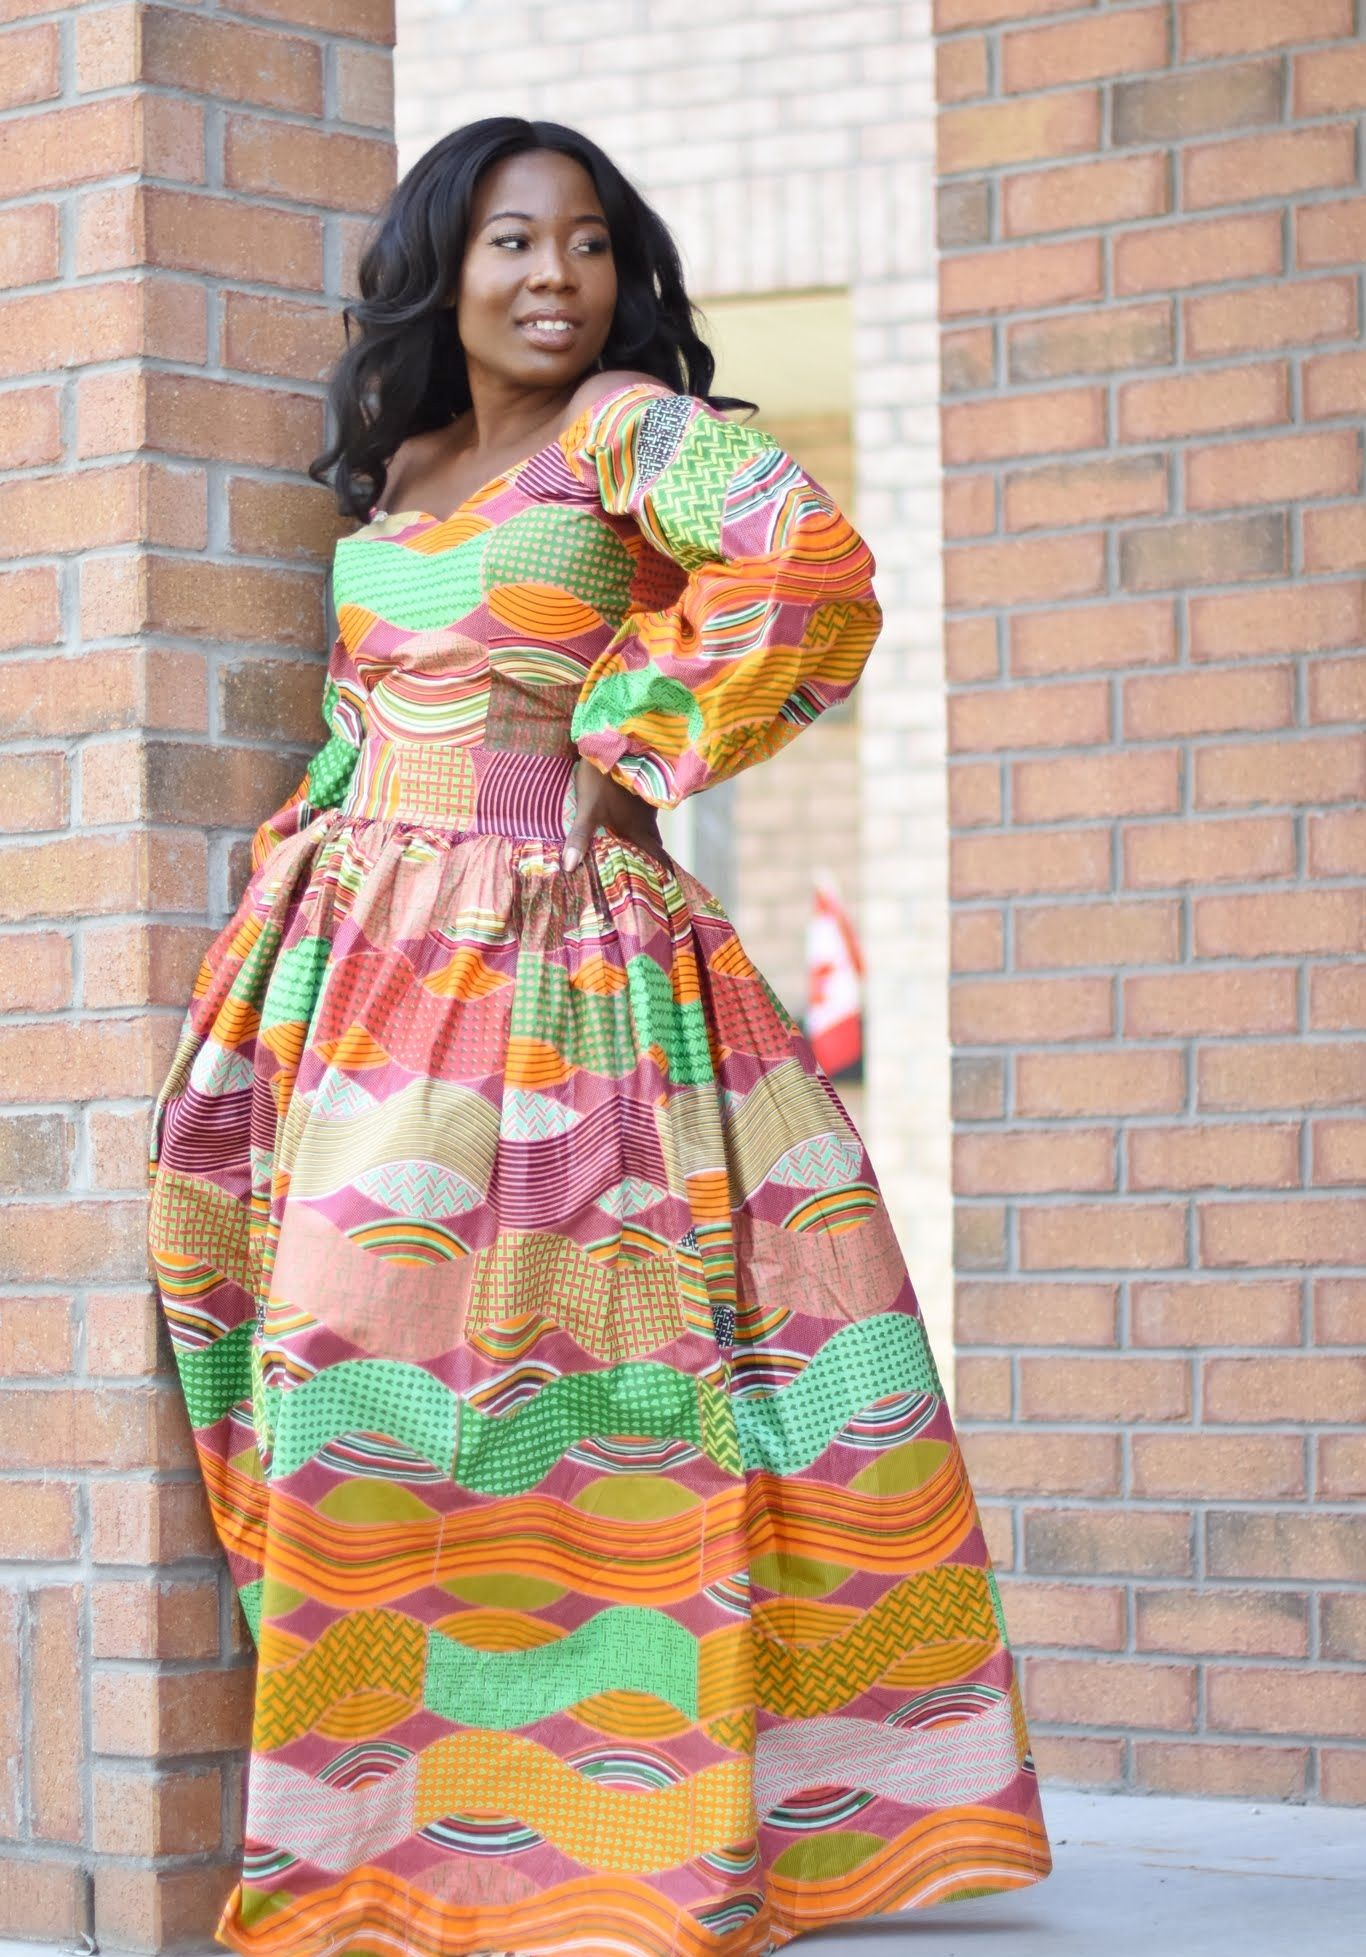 What is clothing like in modern day Africa?